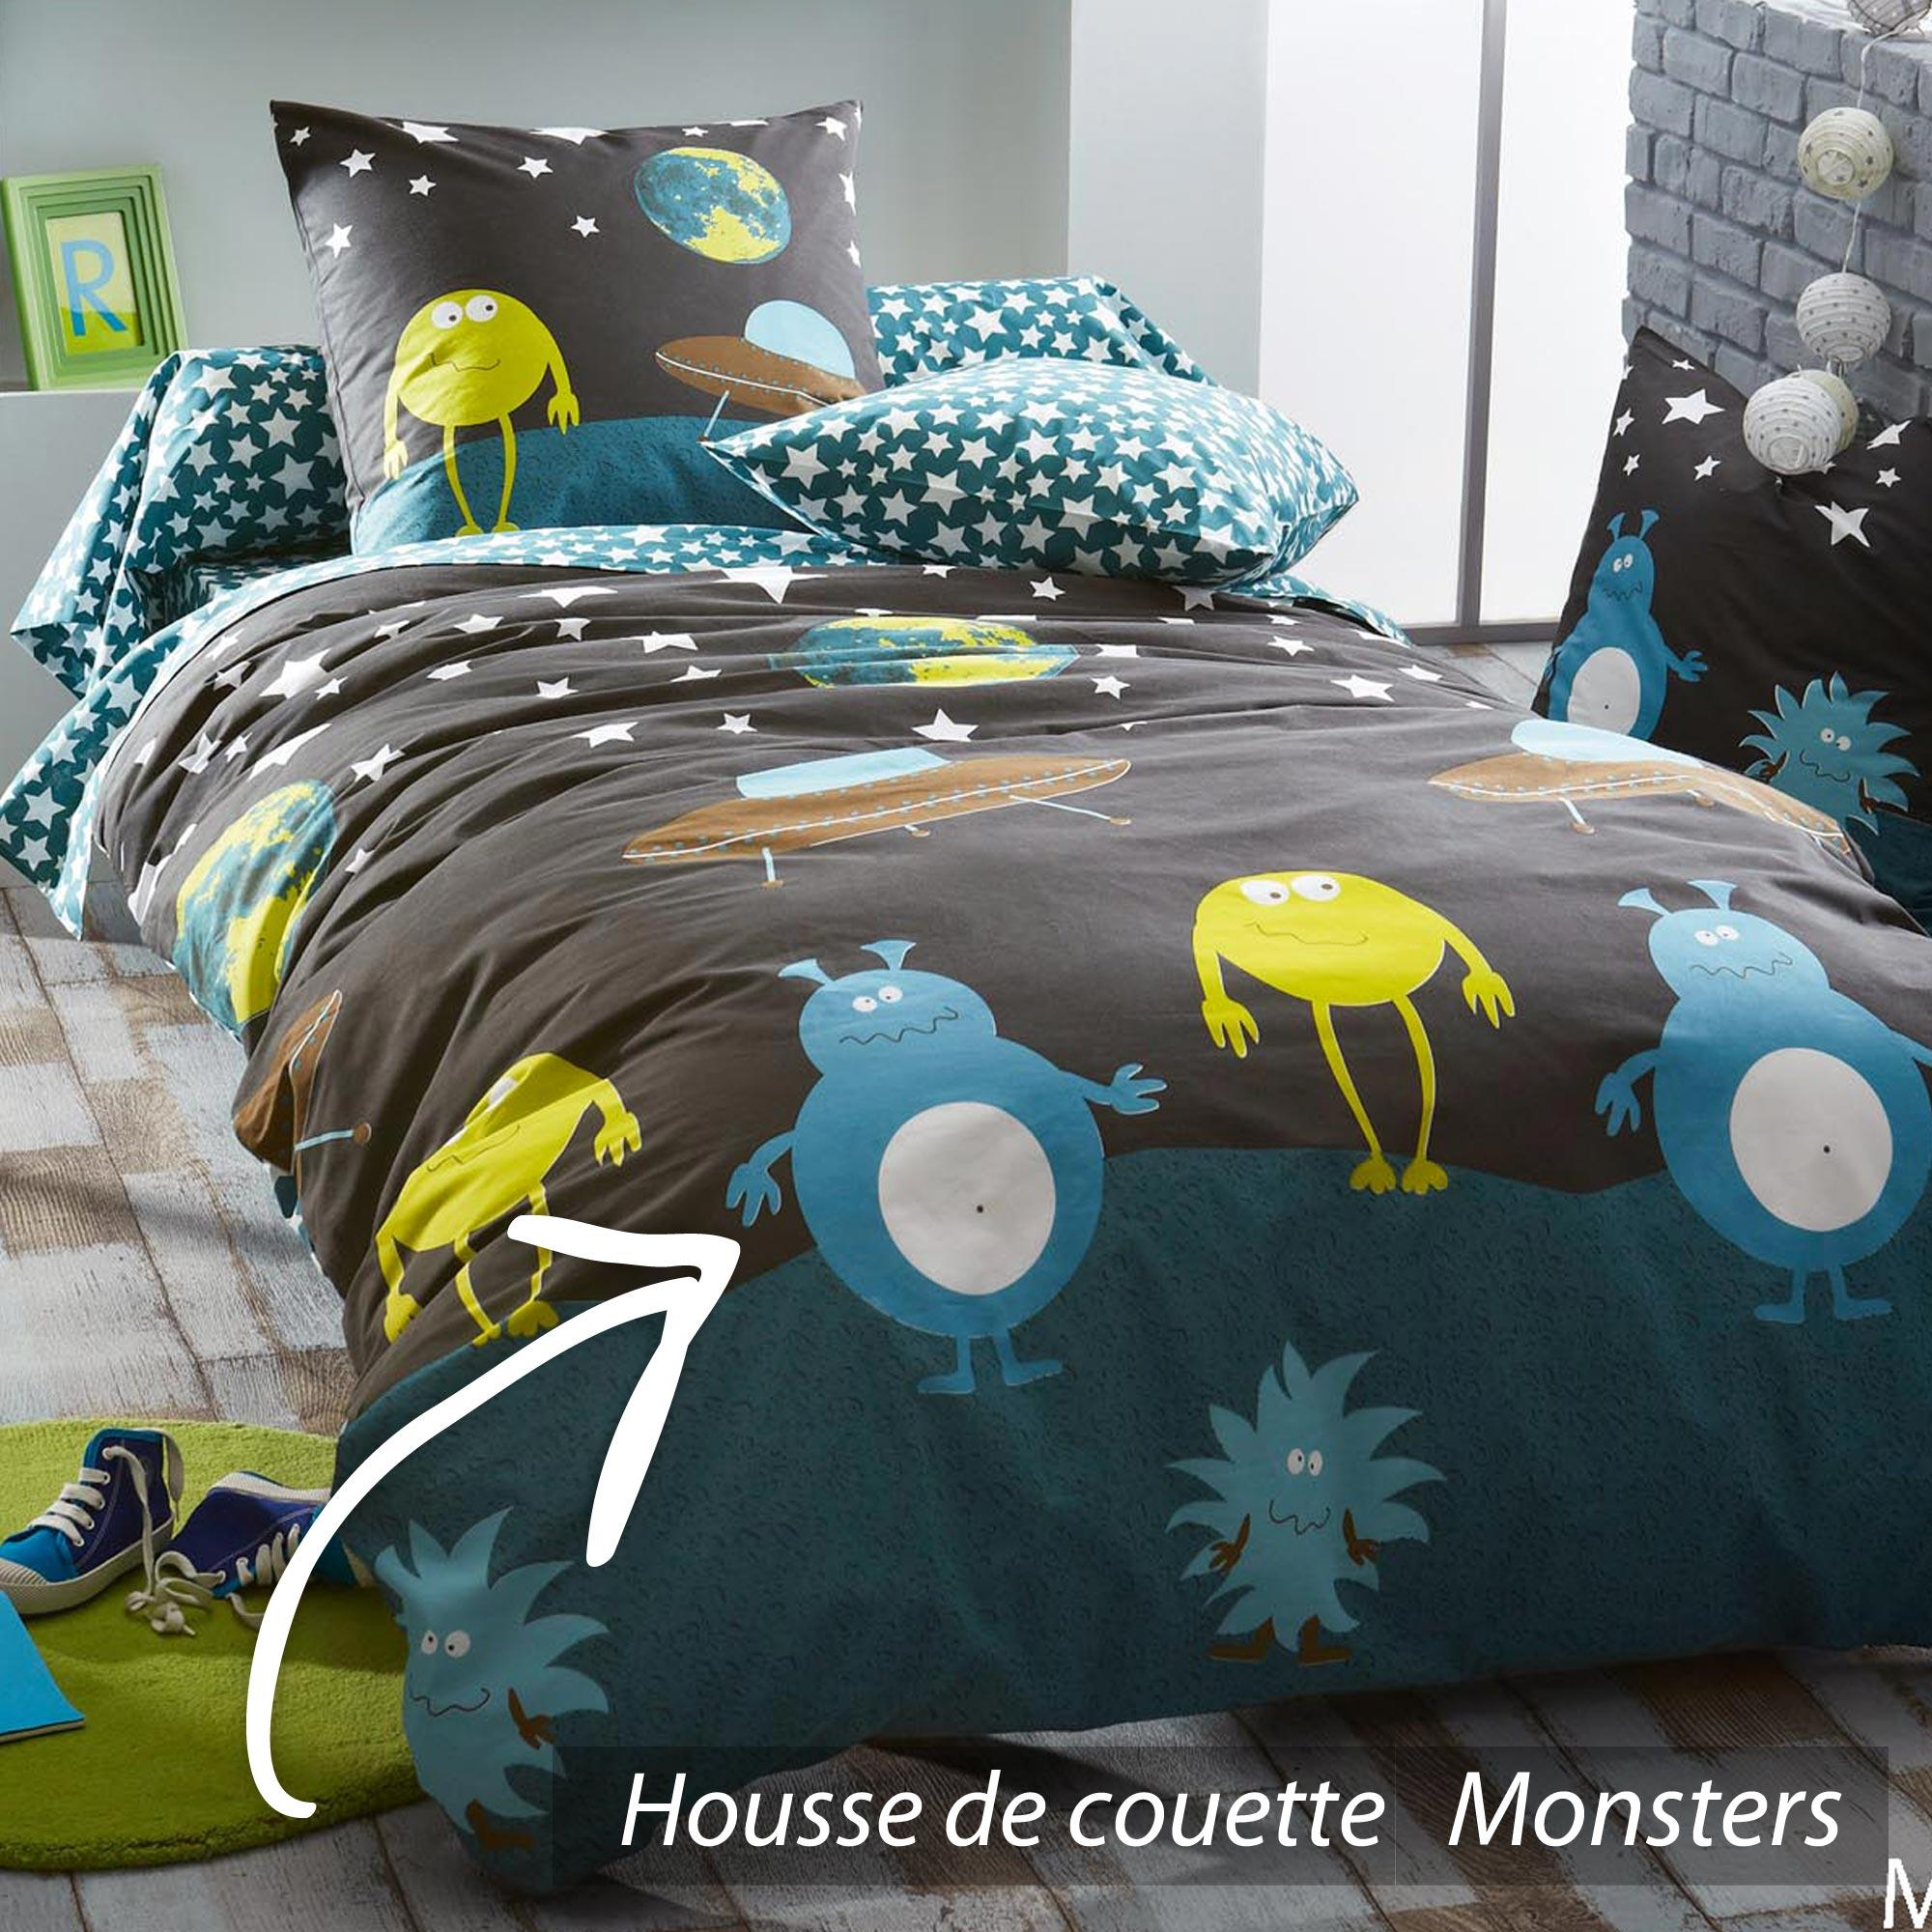 housse de couette 200x200 cm monsters linnea vente de linge de maison. Black Bedroom Furniture Sets. Home Design Ideas